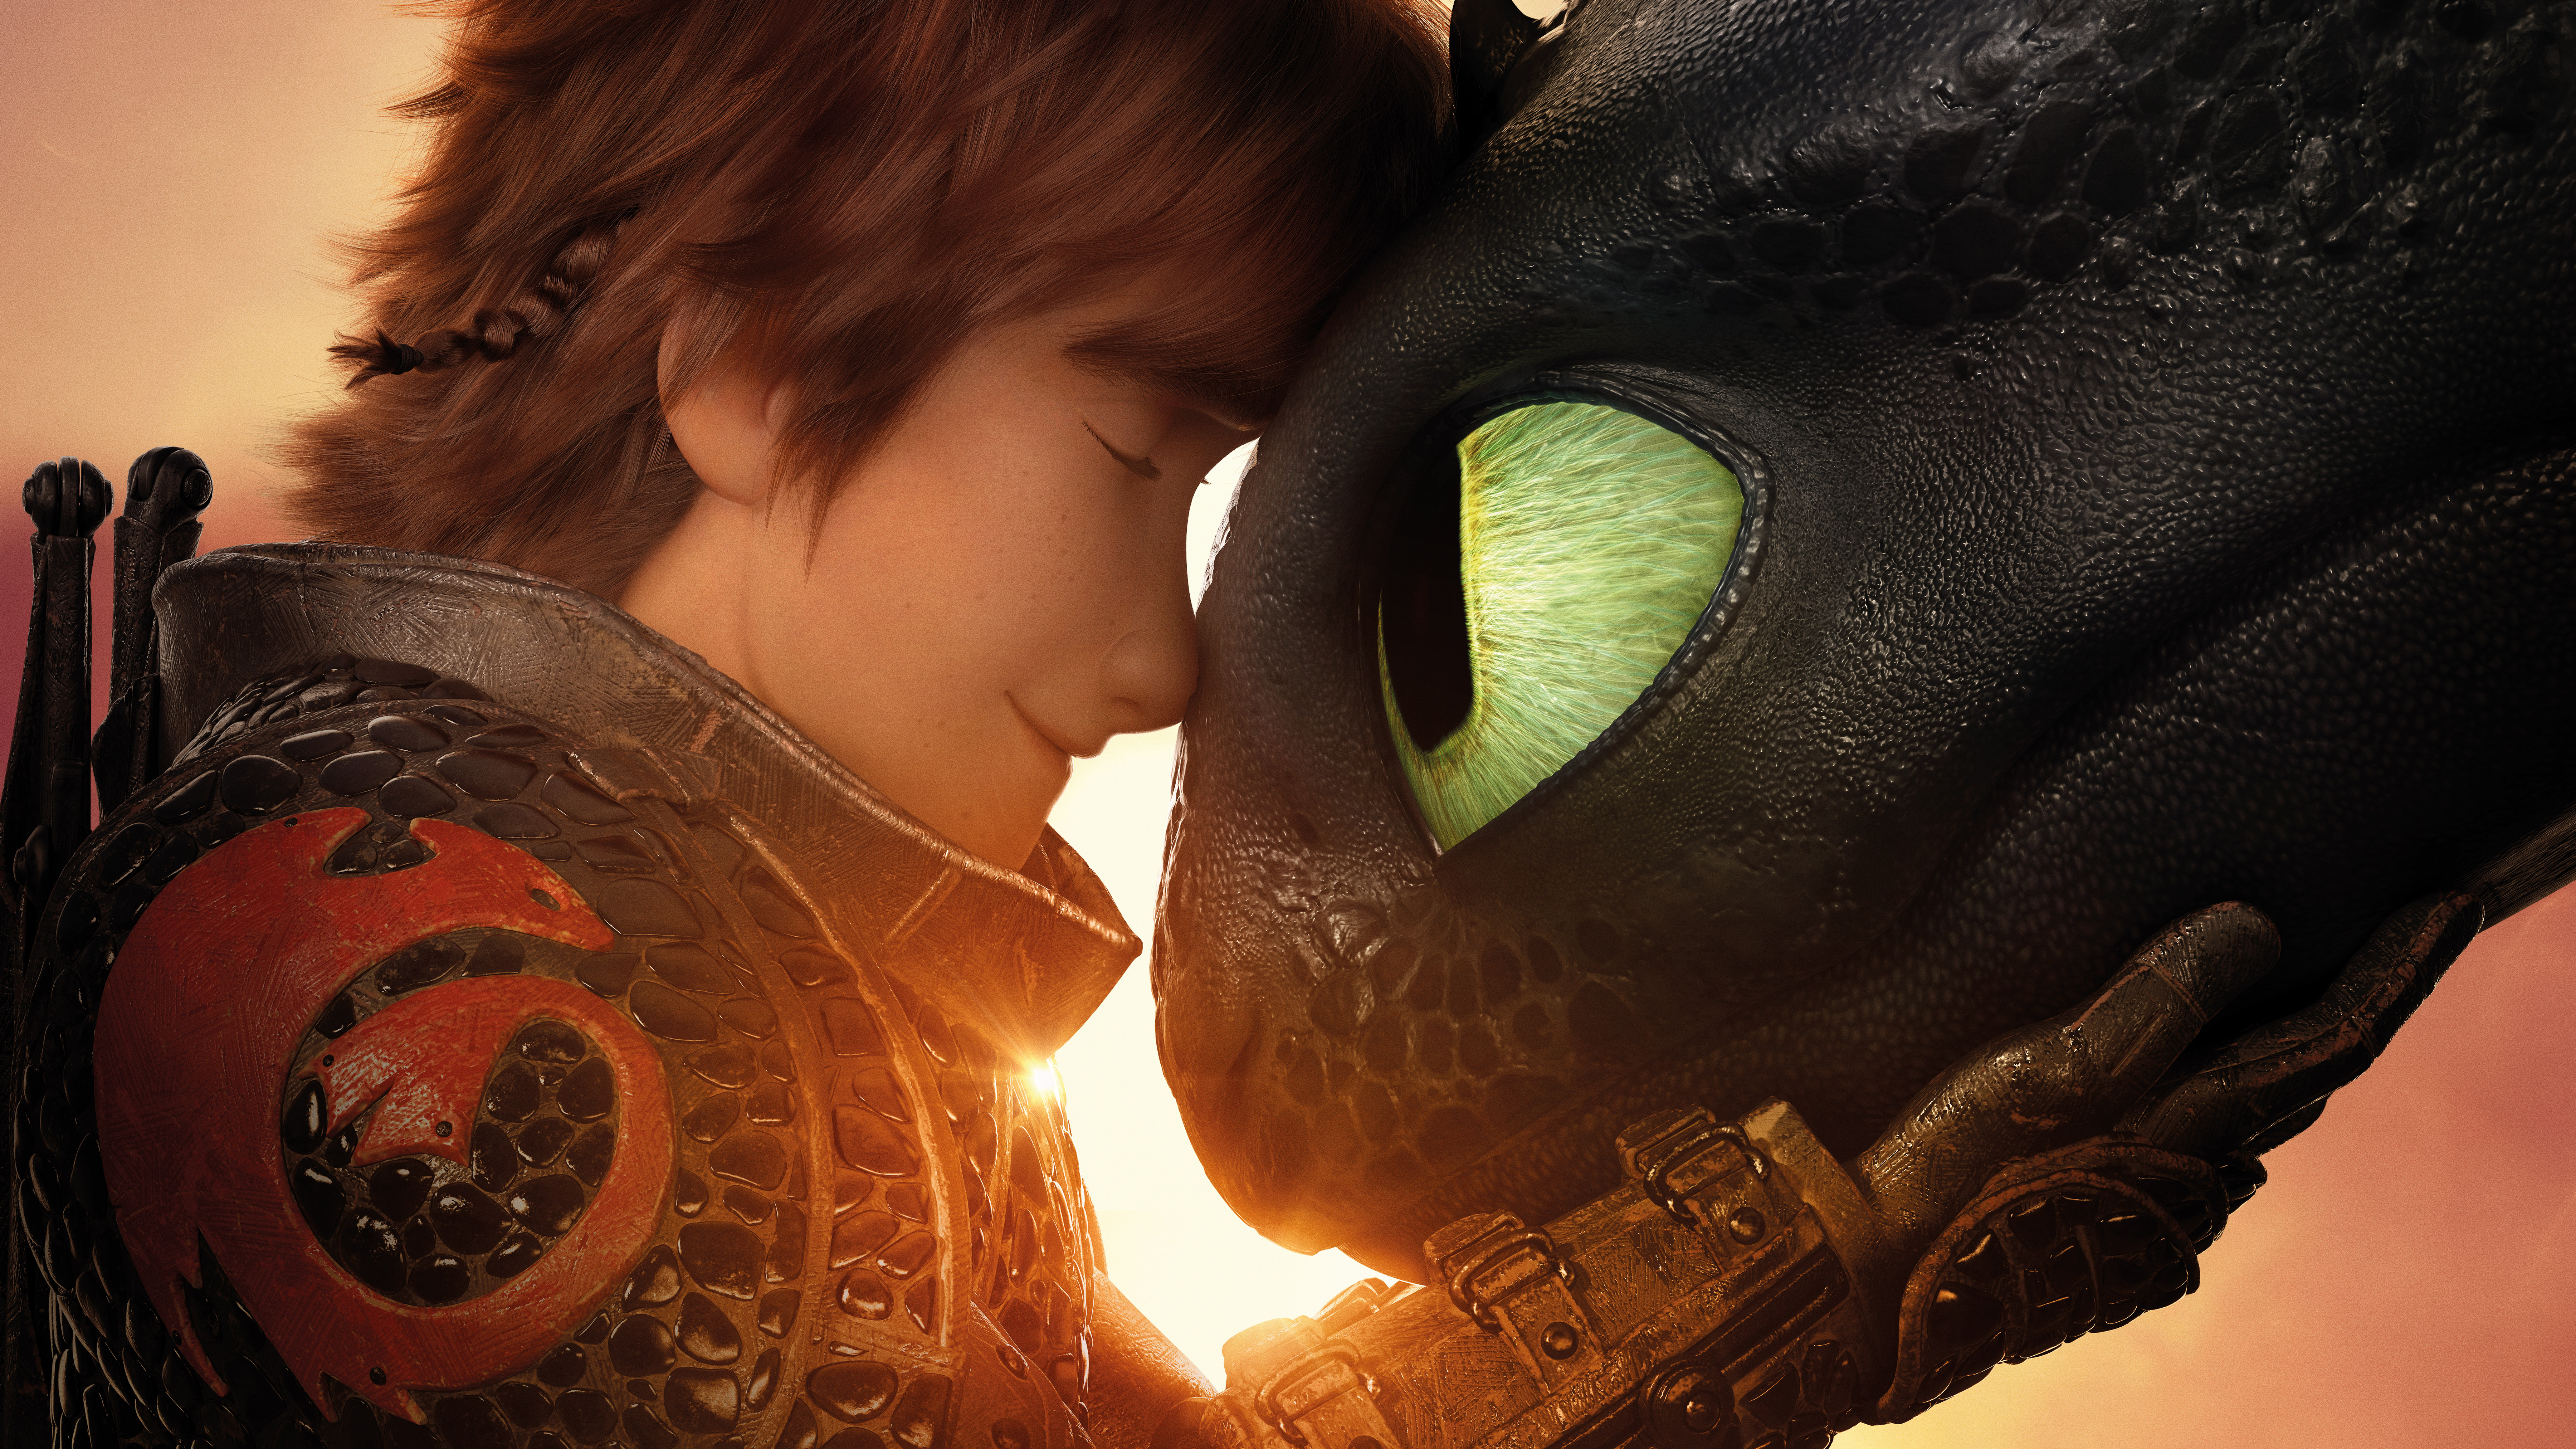 How To Train Your Dragon The Hidden World 8k 2019 Hd Movies 4k Wallpapers Images Backgrounds Photos And Pictures